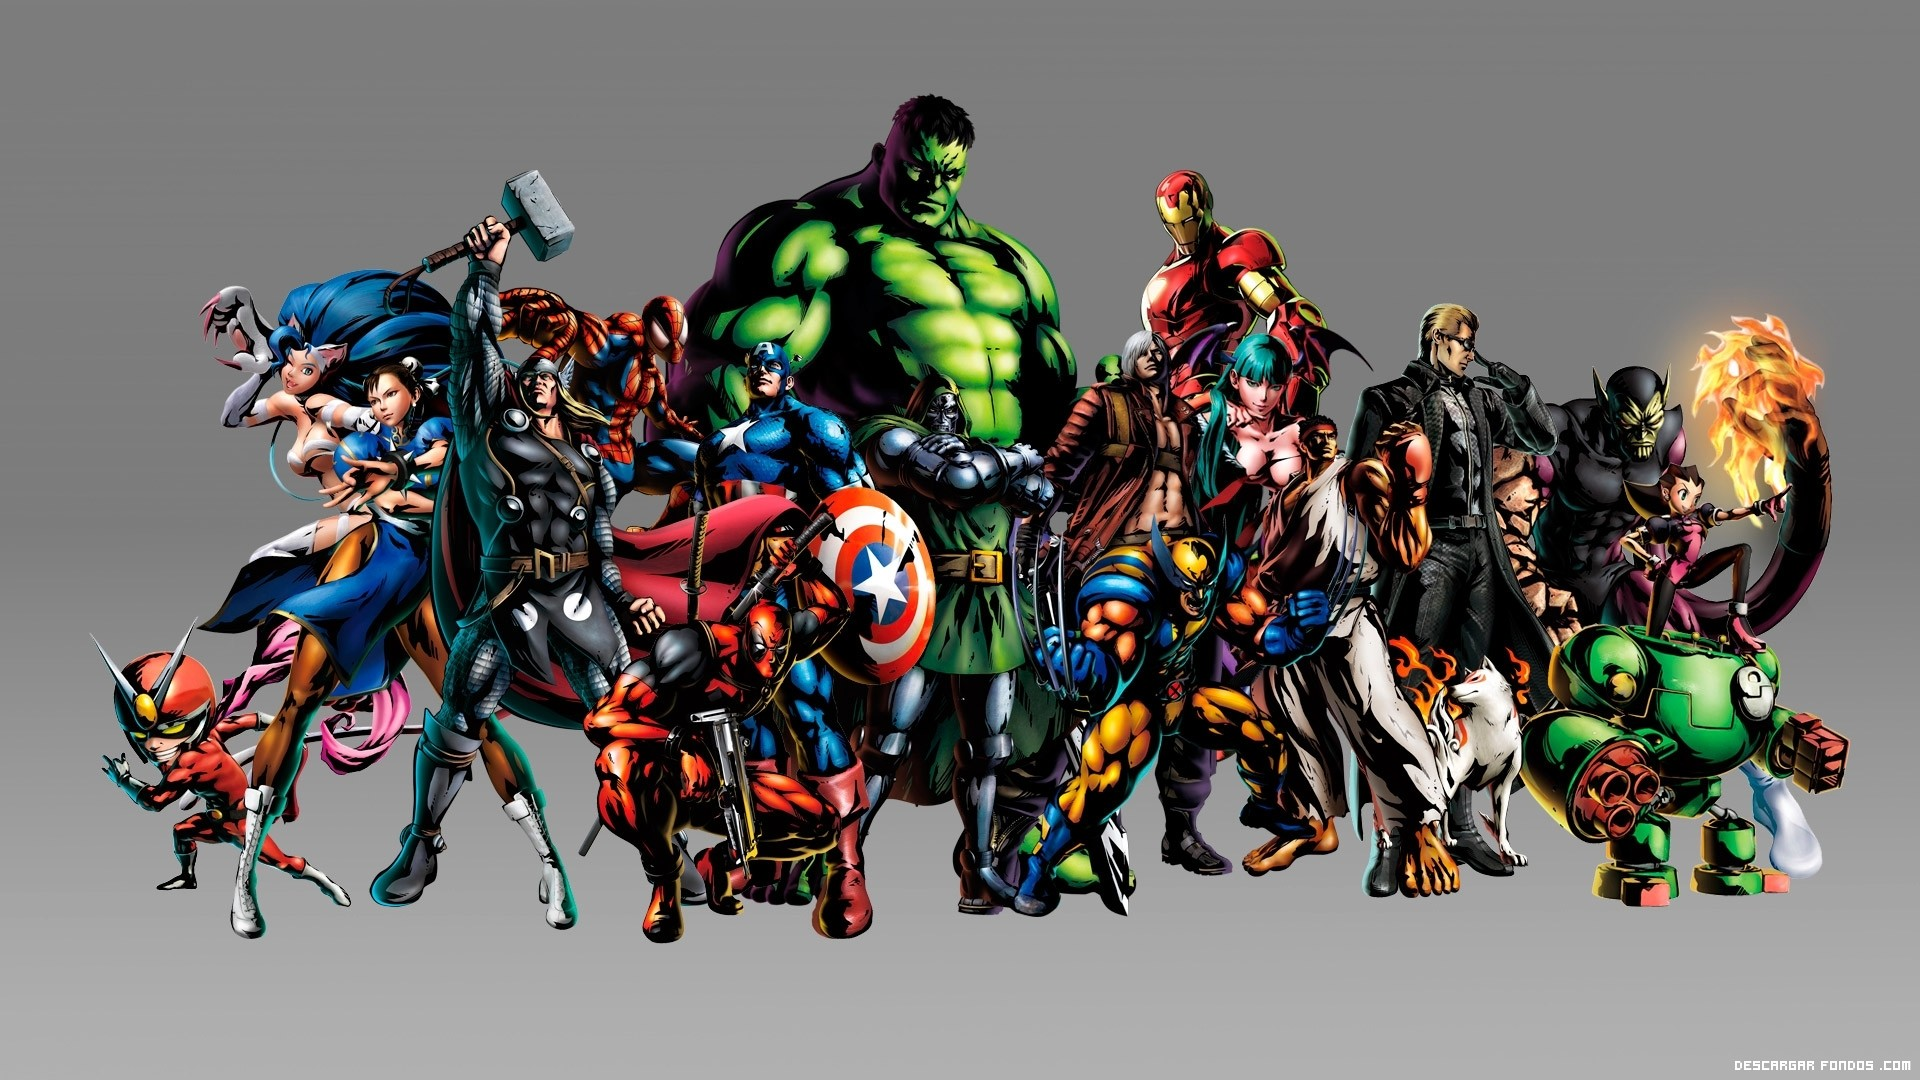 Res: 1920x1080, Marvel Super Heroes Exclusive HD Wallpapers 6647